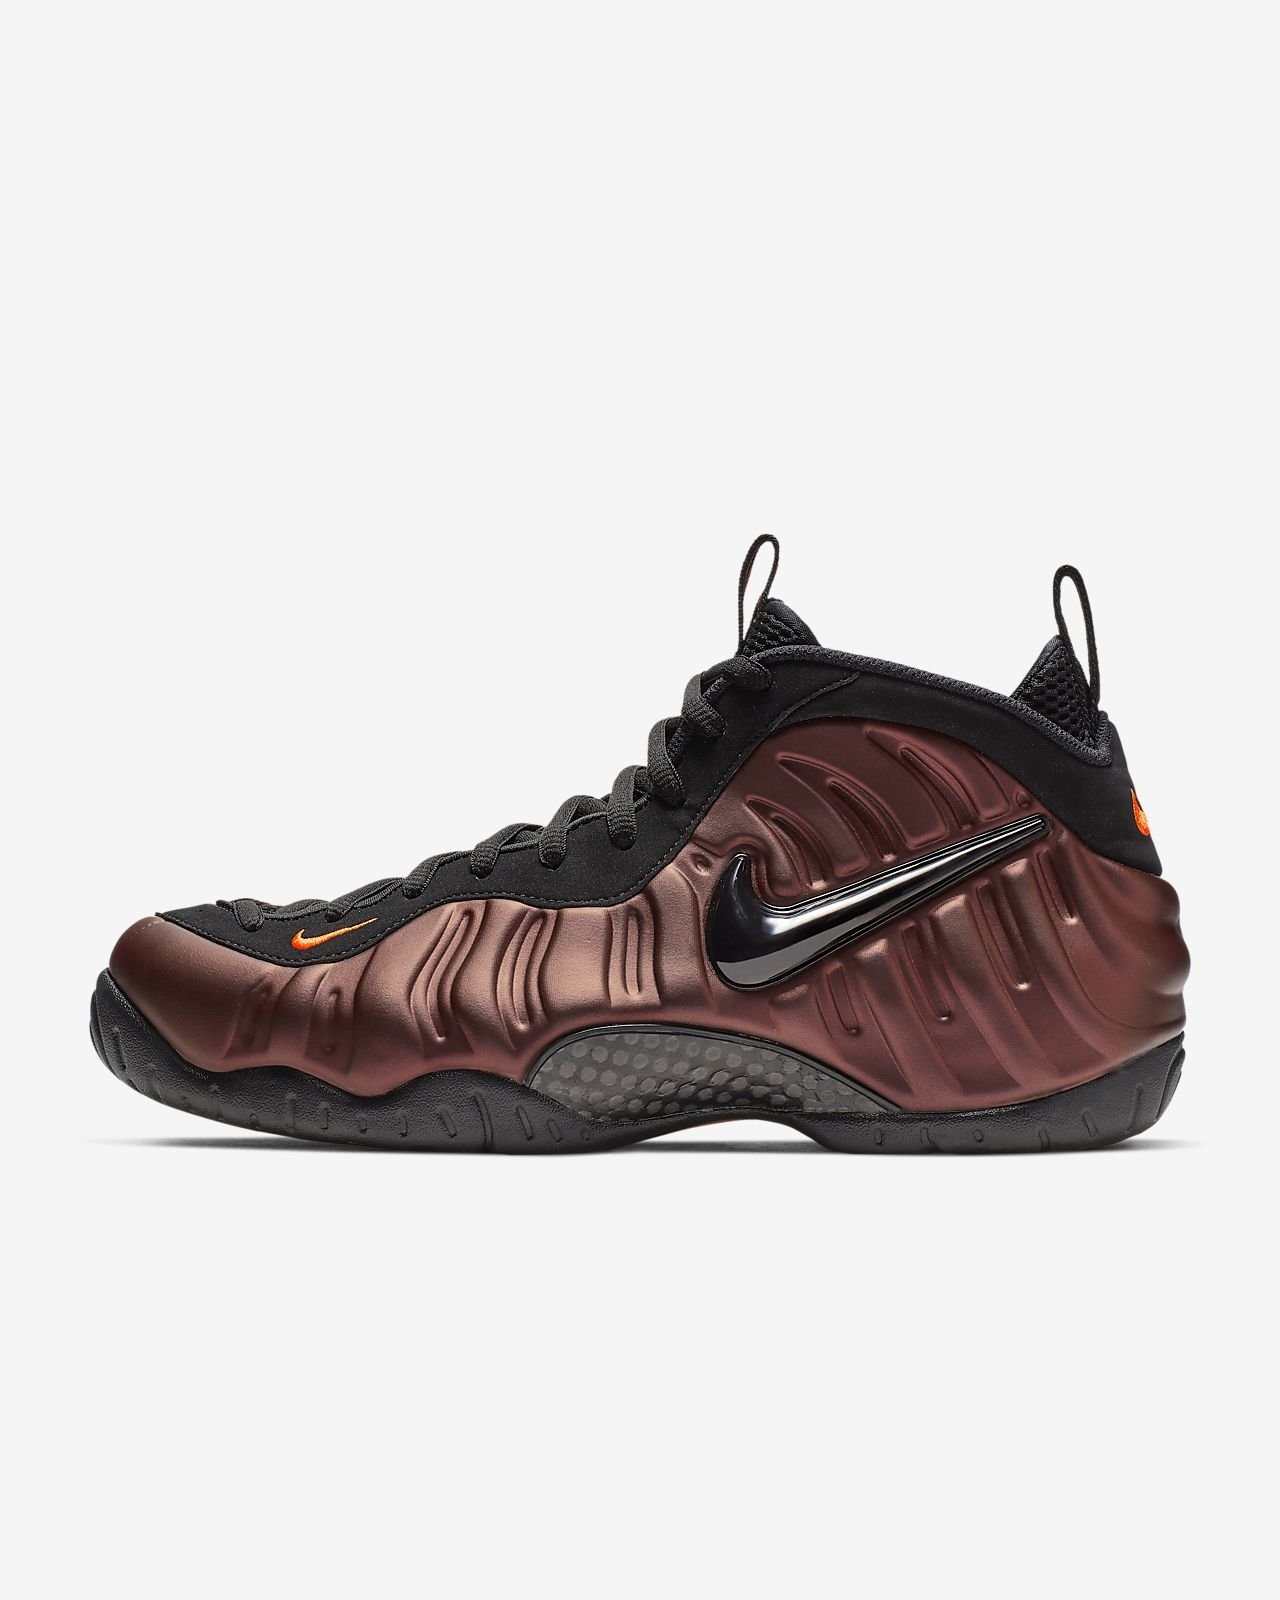 5f919f3b957b2 Nike Air Foamposite Pro Men s Shoe. Nike.com IN